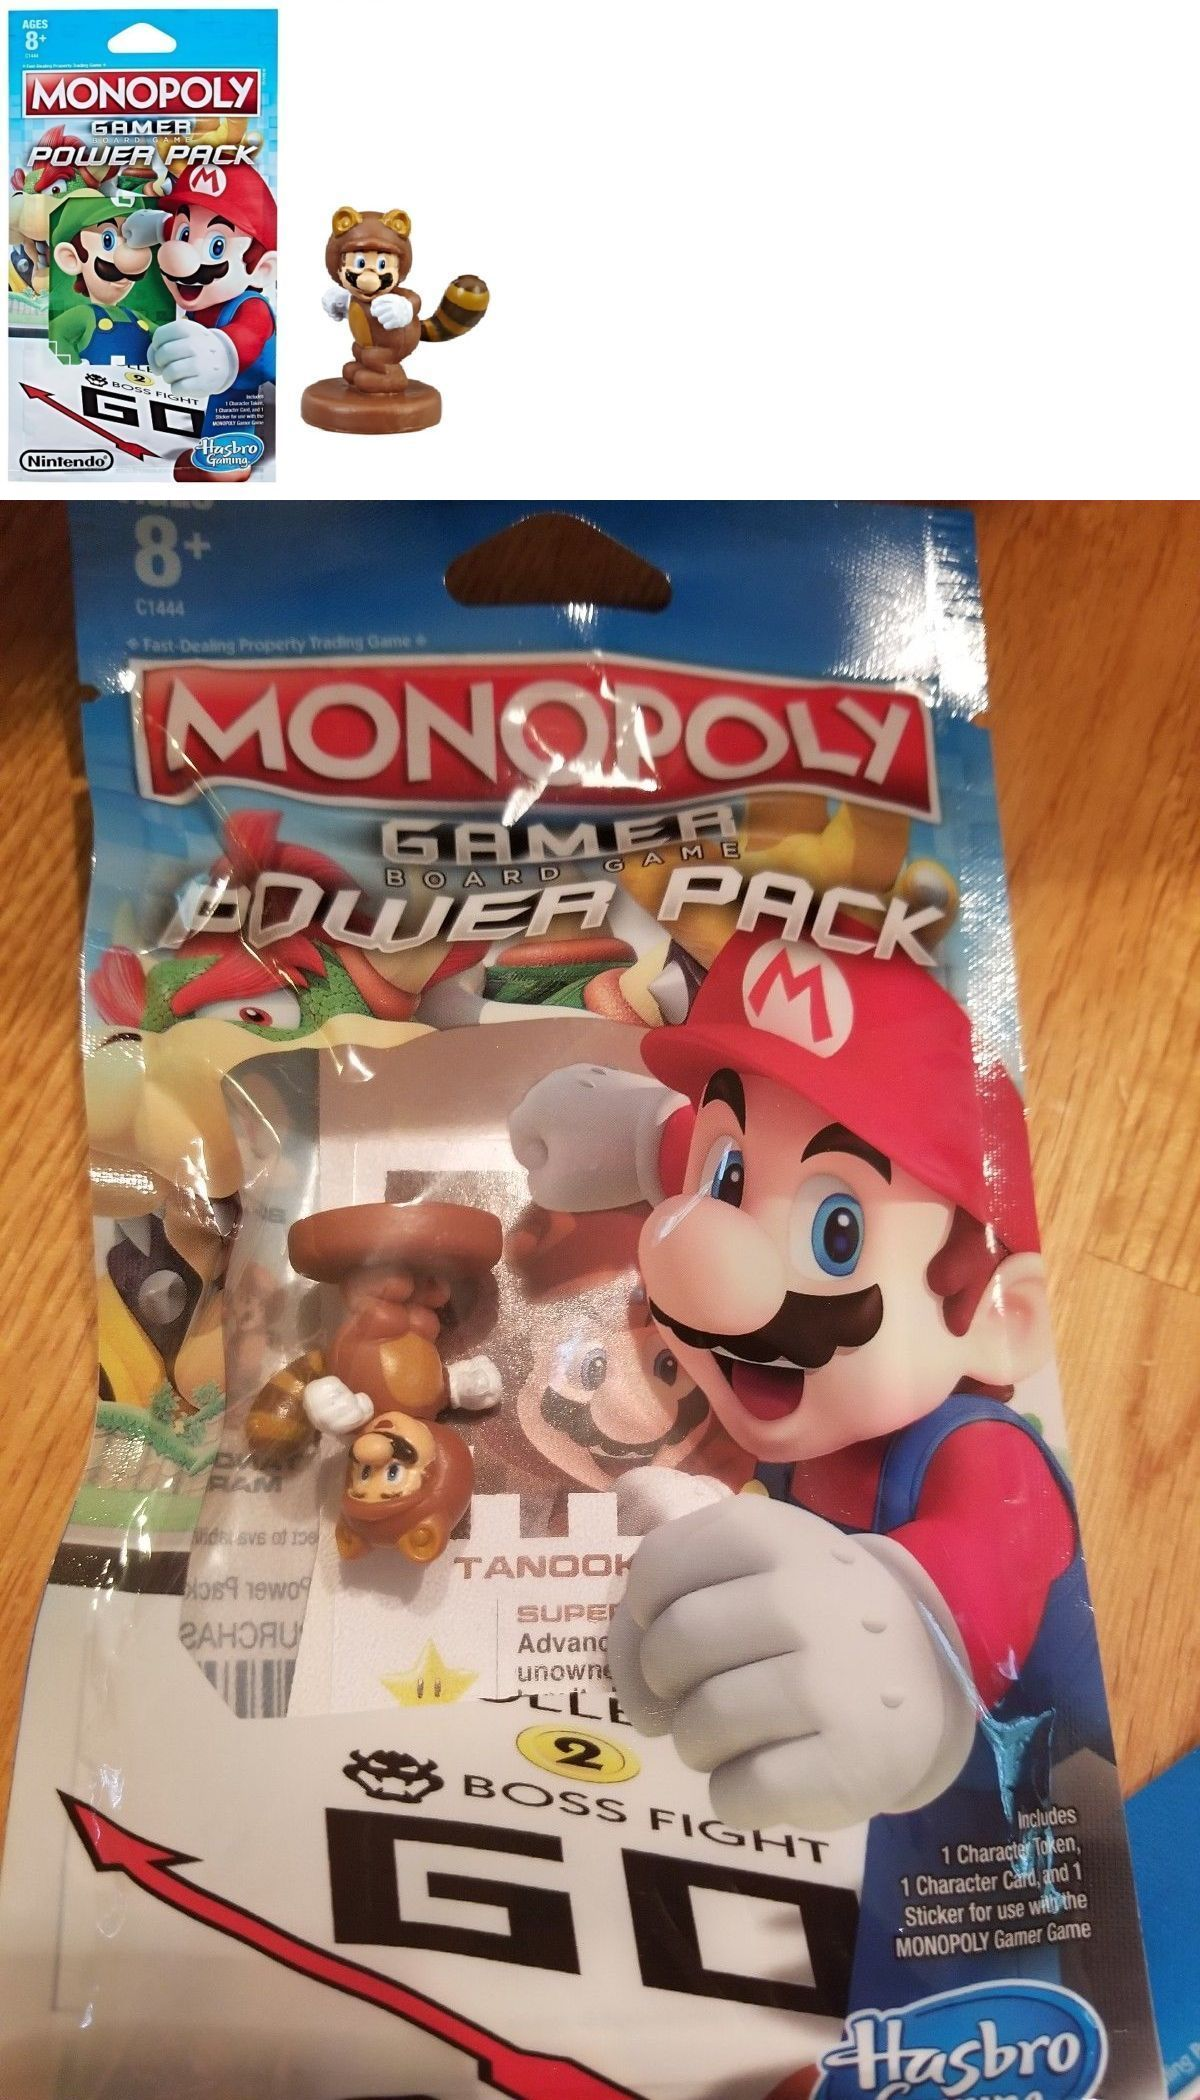 Game Pieces Parts 7317 New Monopoly Gamer Mario Kart Bowser Power